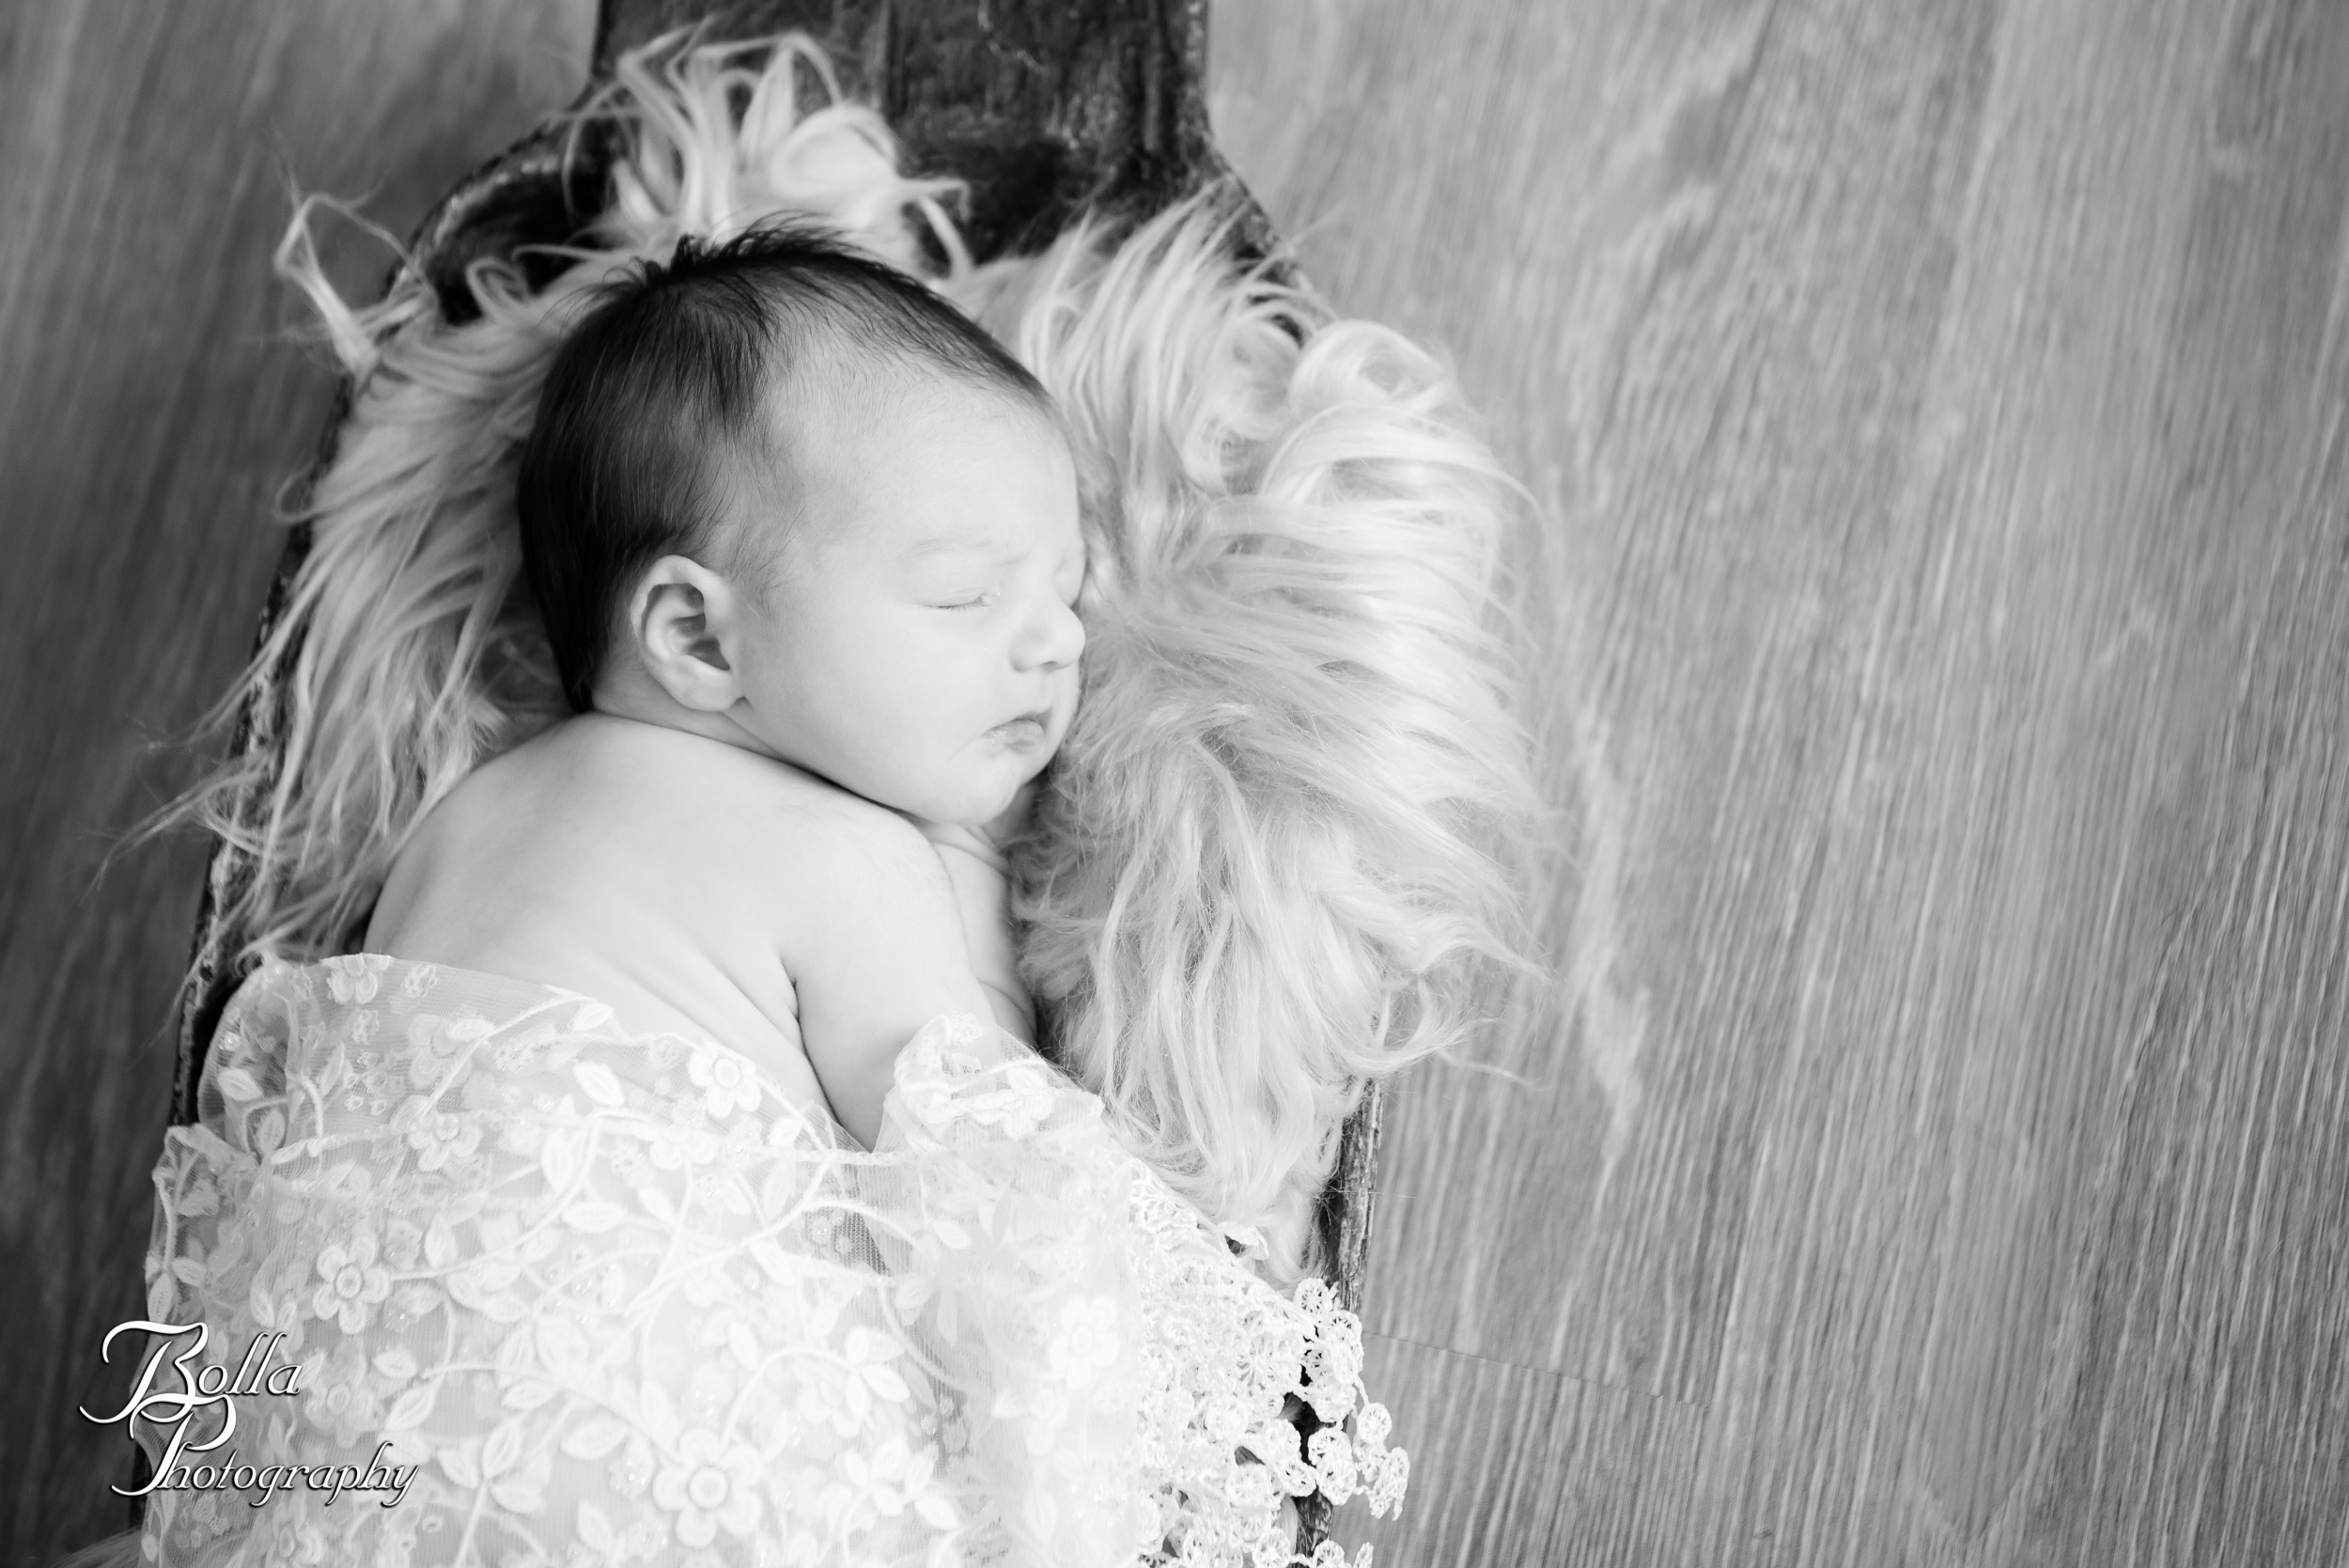 20170826_Bolla photography edwardsville wedding newborn baby photographer st louis weddings babies-2.jpg